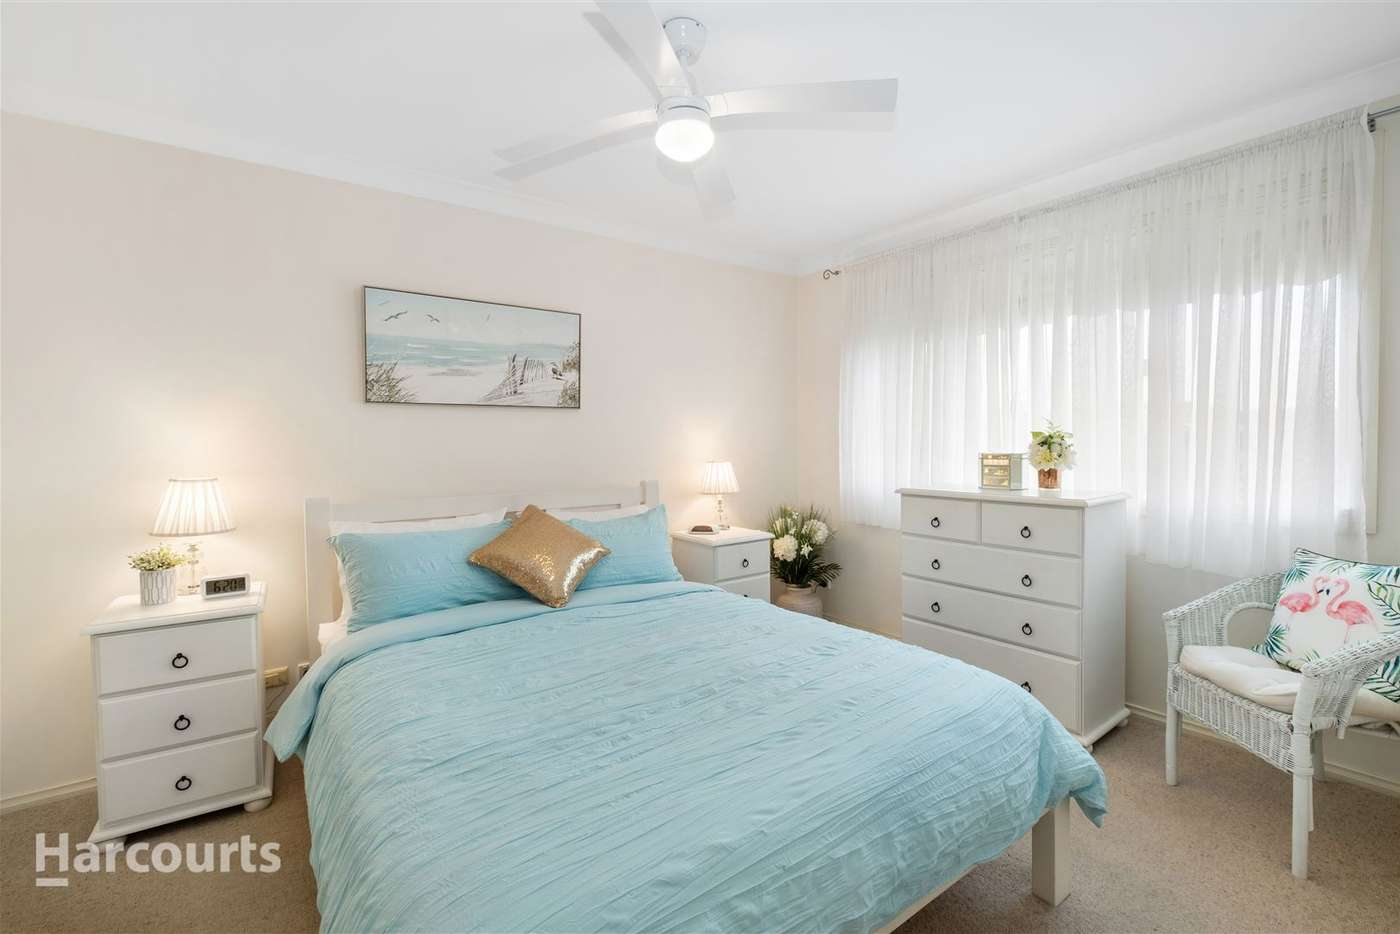 Fifth view of Homely villa listing, 5 Melville Street, Kincumber NSW 2251